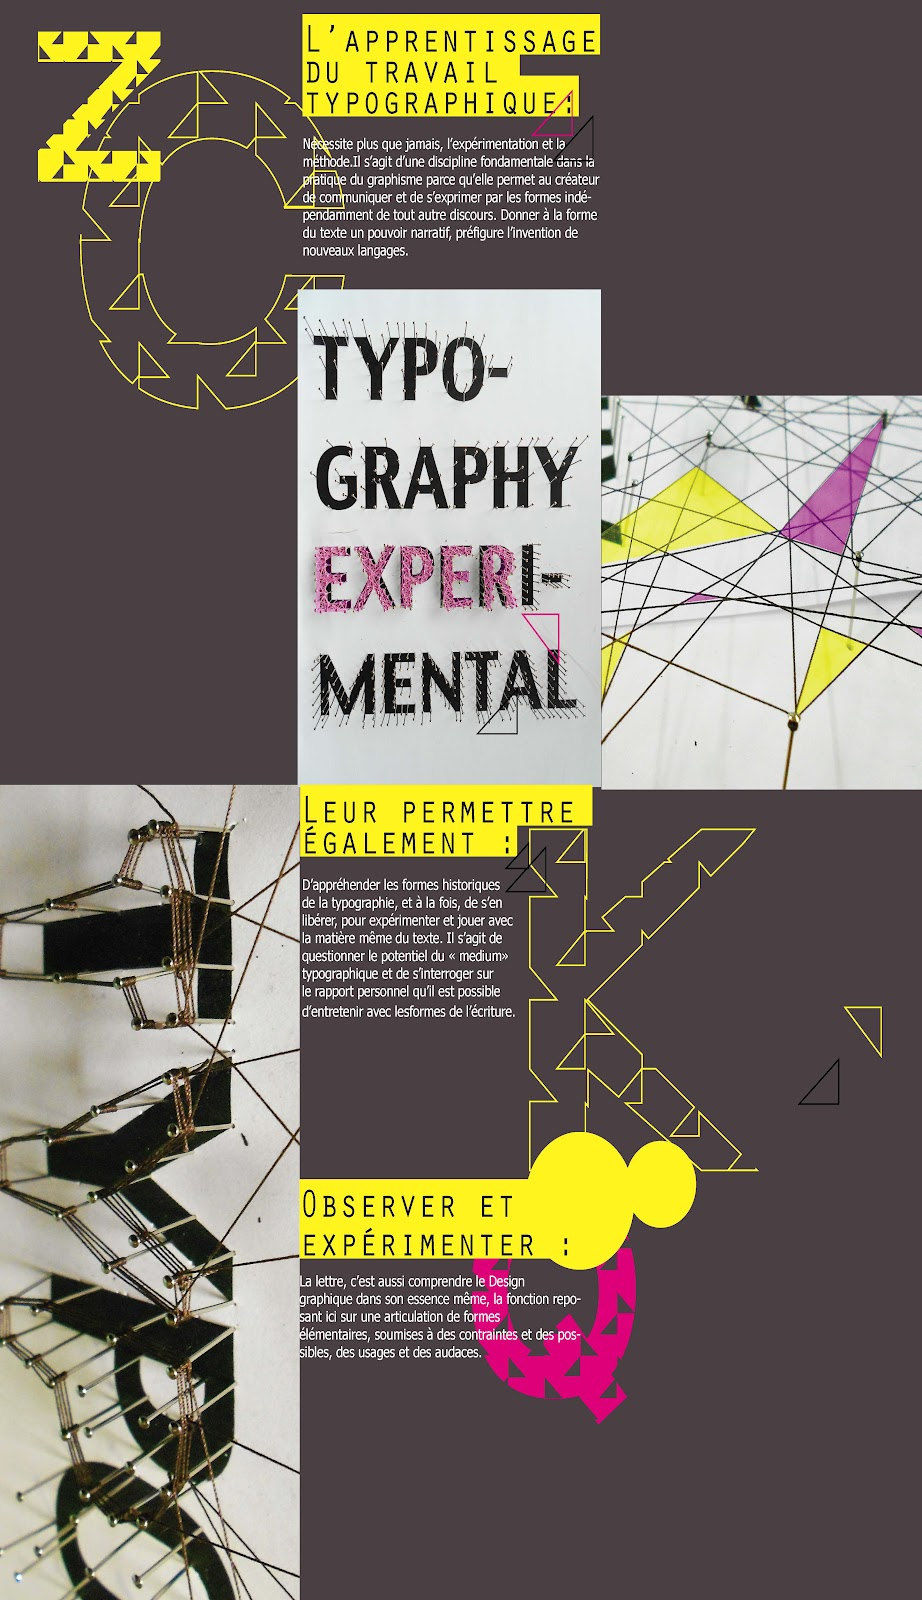 process and ways  typographie filaire      1cvpm      derni u00e8re  u00e9tape